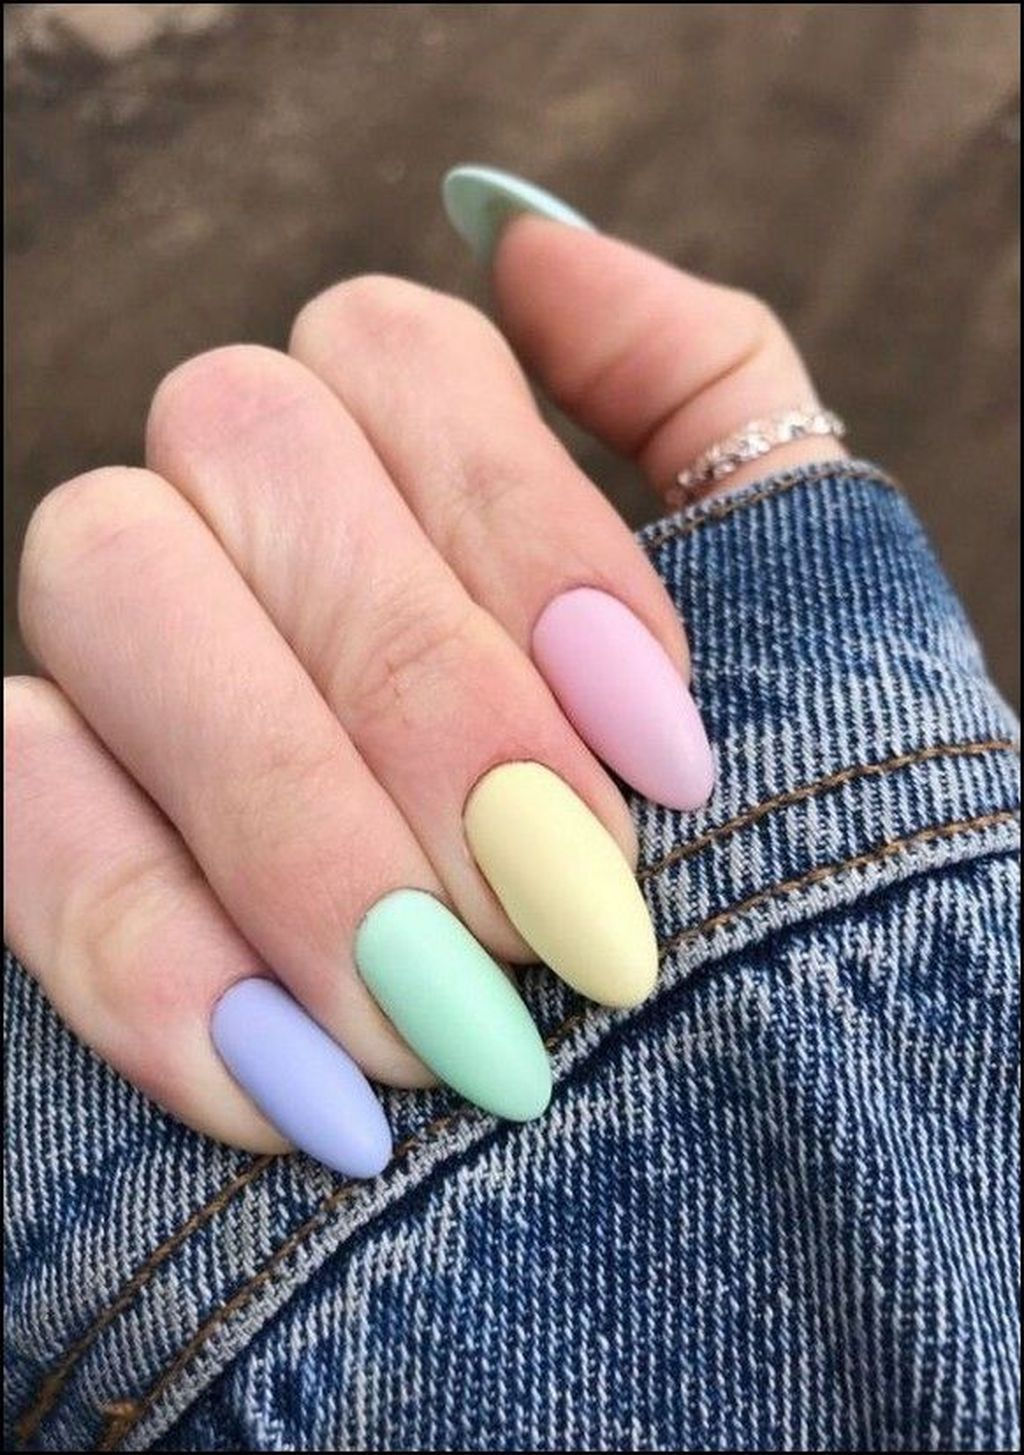 30 Casual Acrylic Nail Art Designs Ideas To Fascinate Your Admirers In 2020 Pastelove Nehty Gelove Nehty Design Nehtu